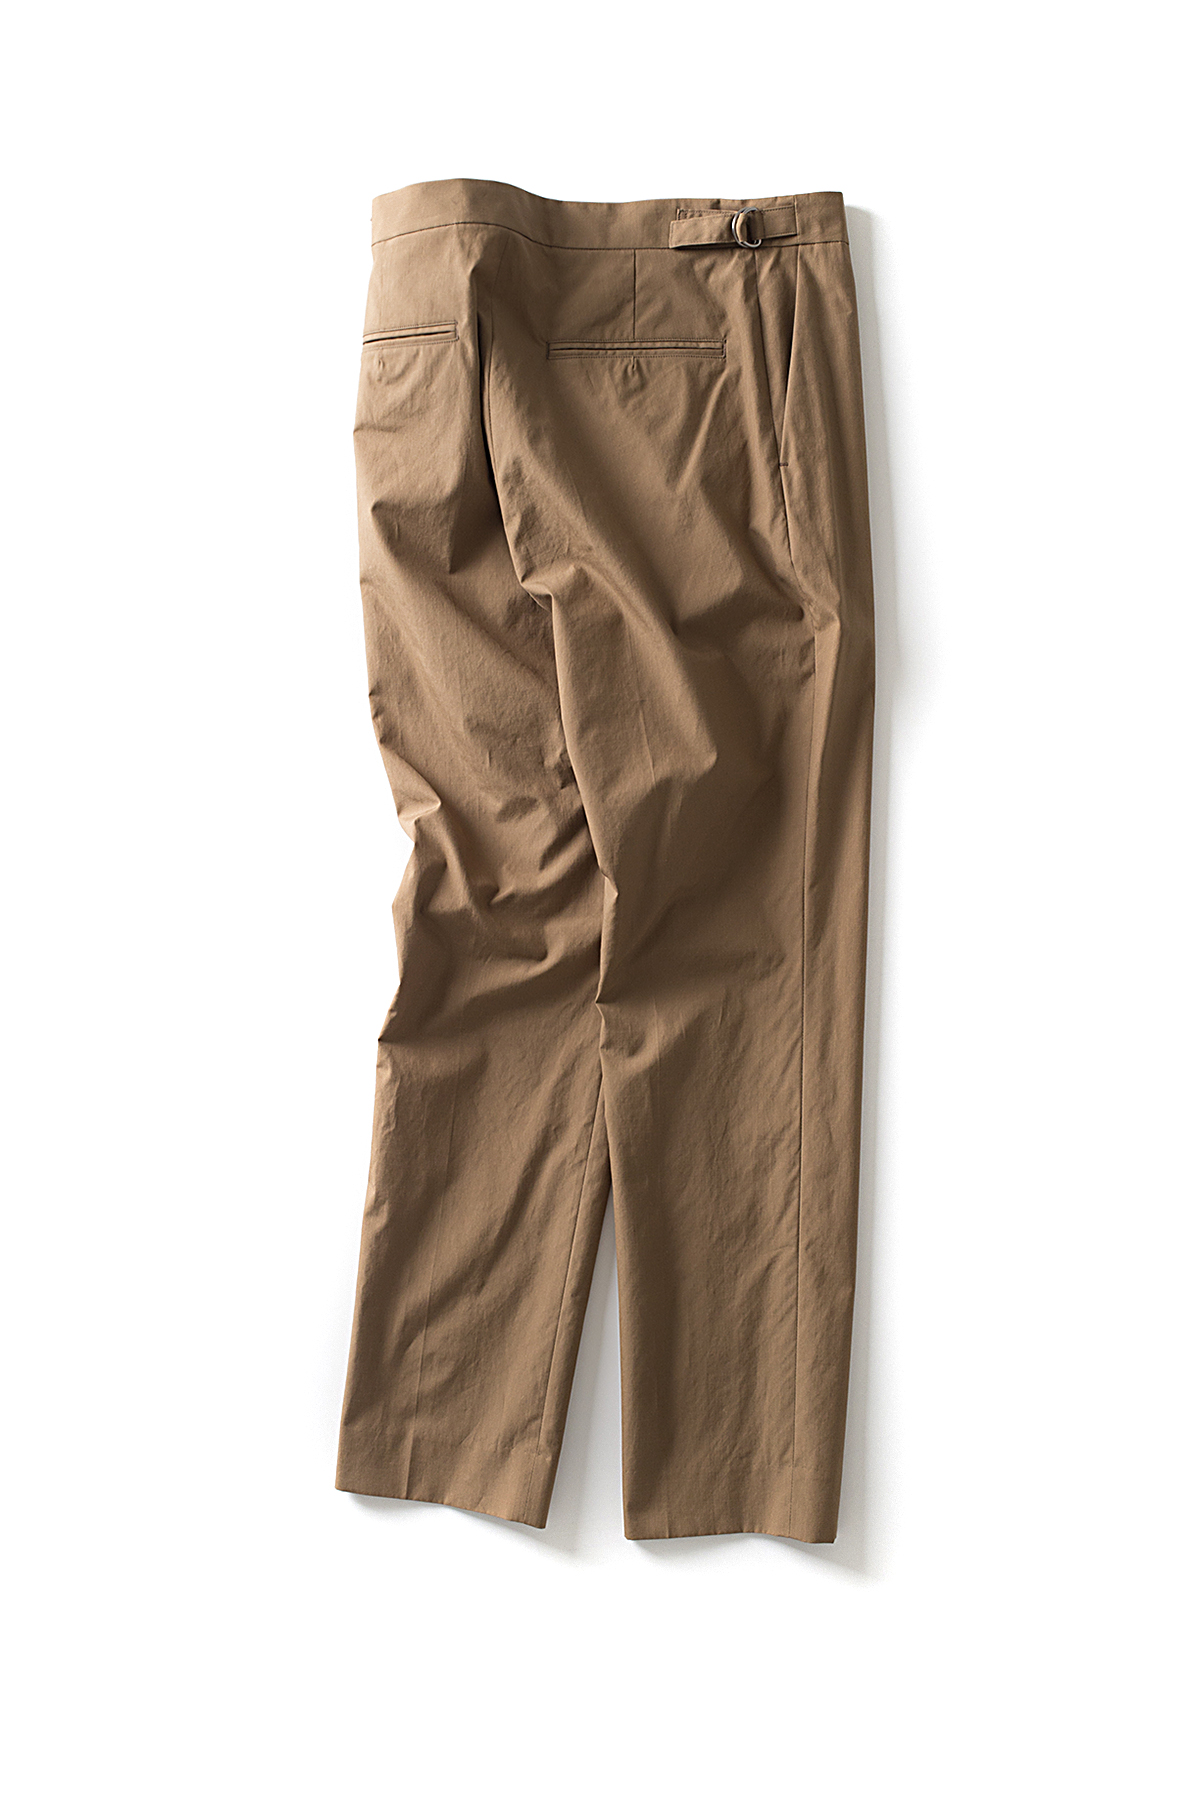 Auralee : Washed Finx Ripstop Slacks (Brown)